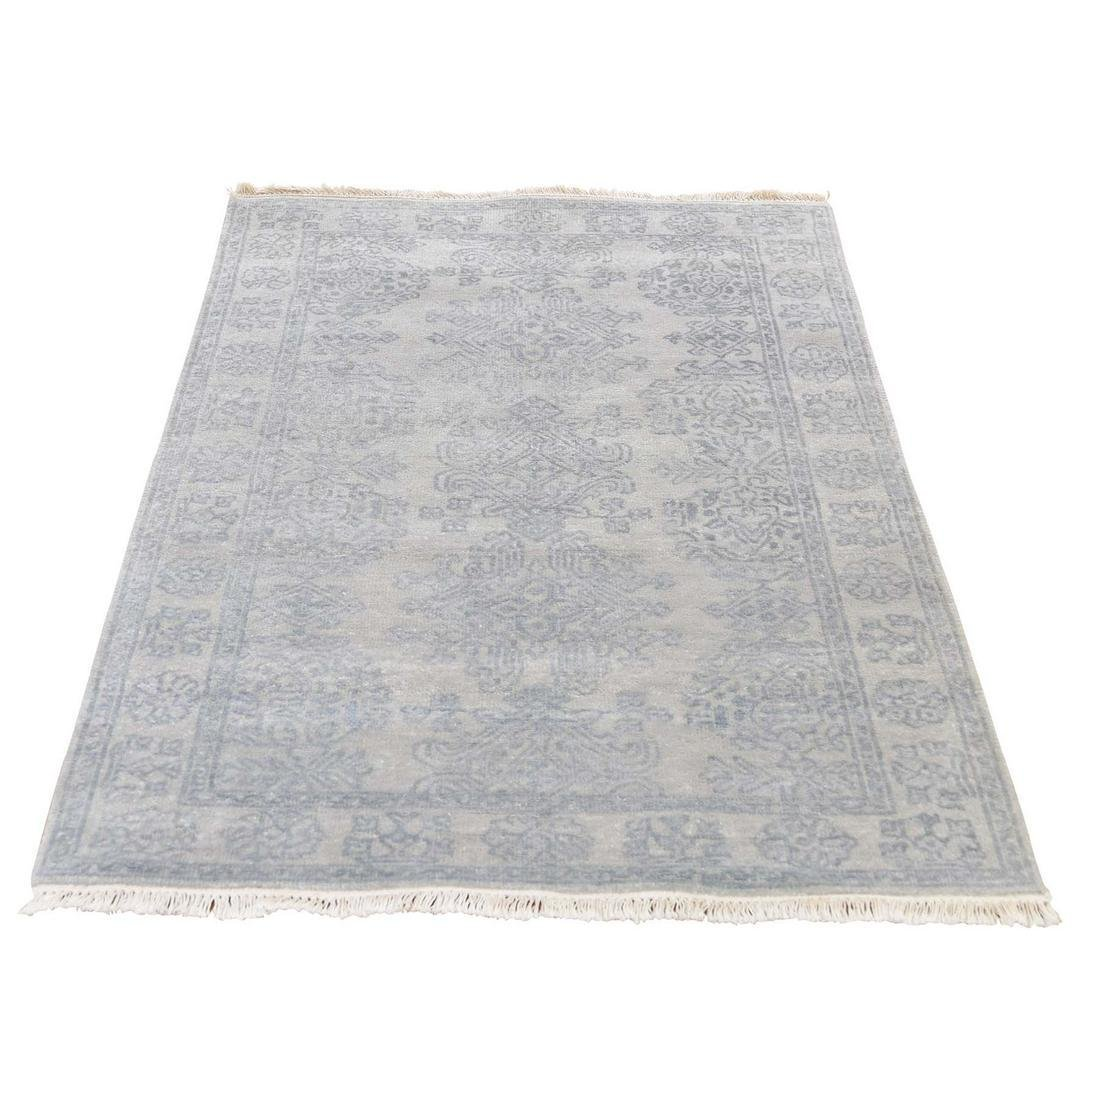 Turkish Knot Oushak Design Hand-Knotted Pure Wool